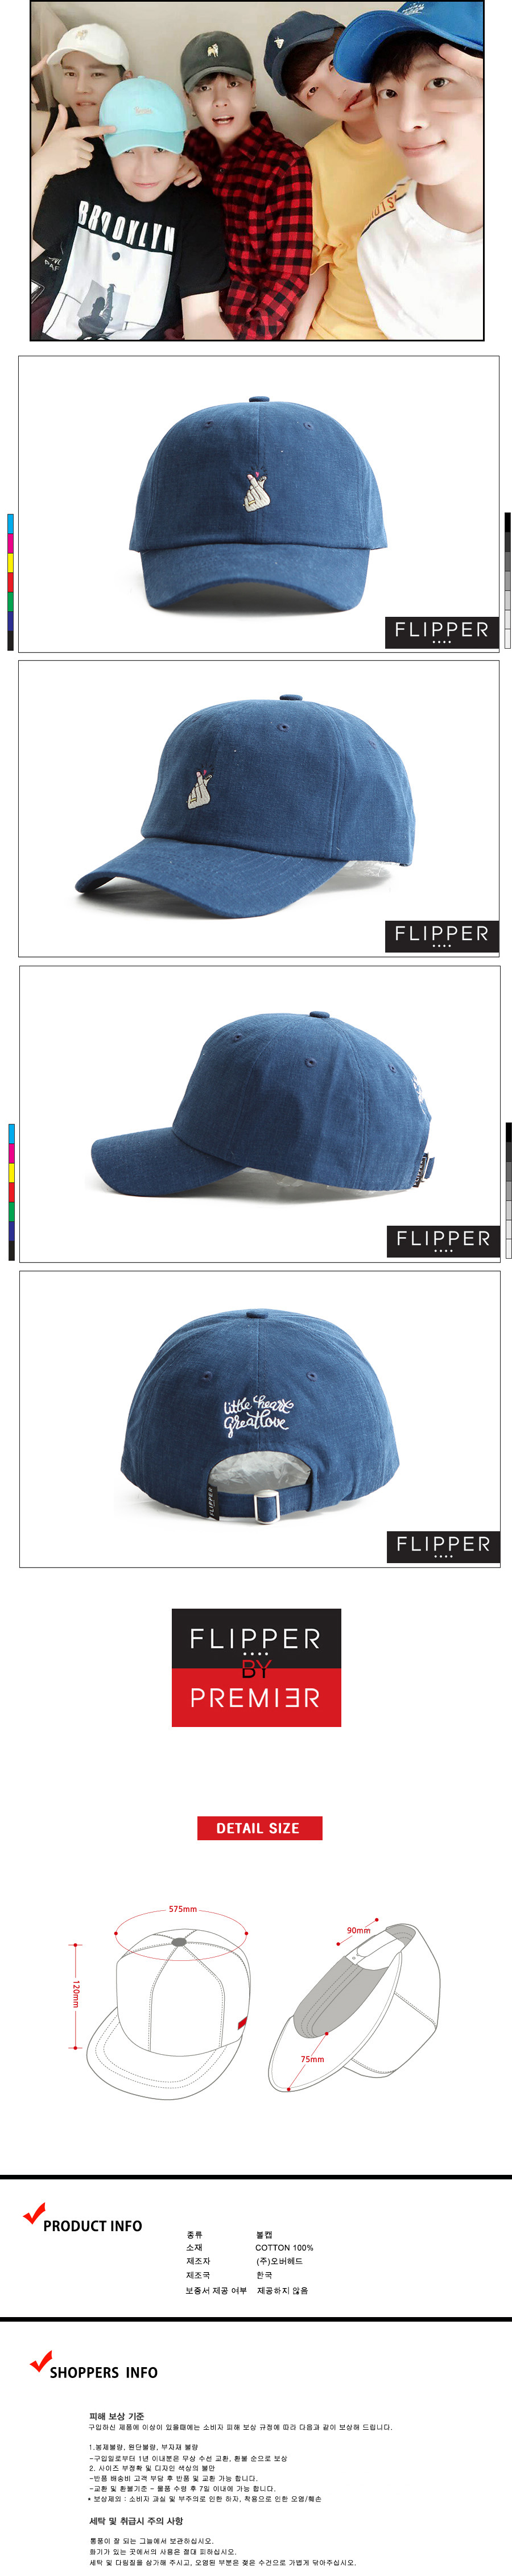 [ PREMIER ] [Premier] Flipper Ball Cap Small Heart Navy (FL085)